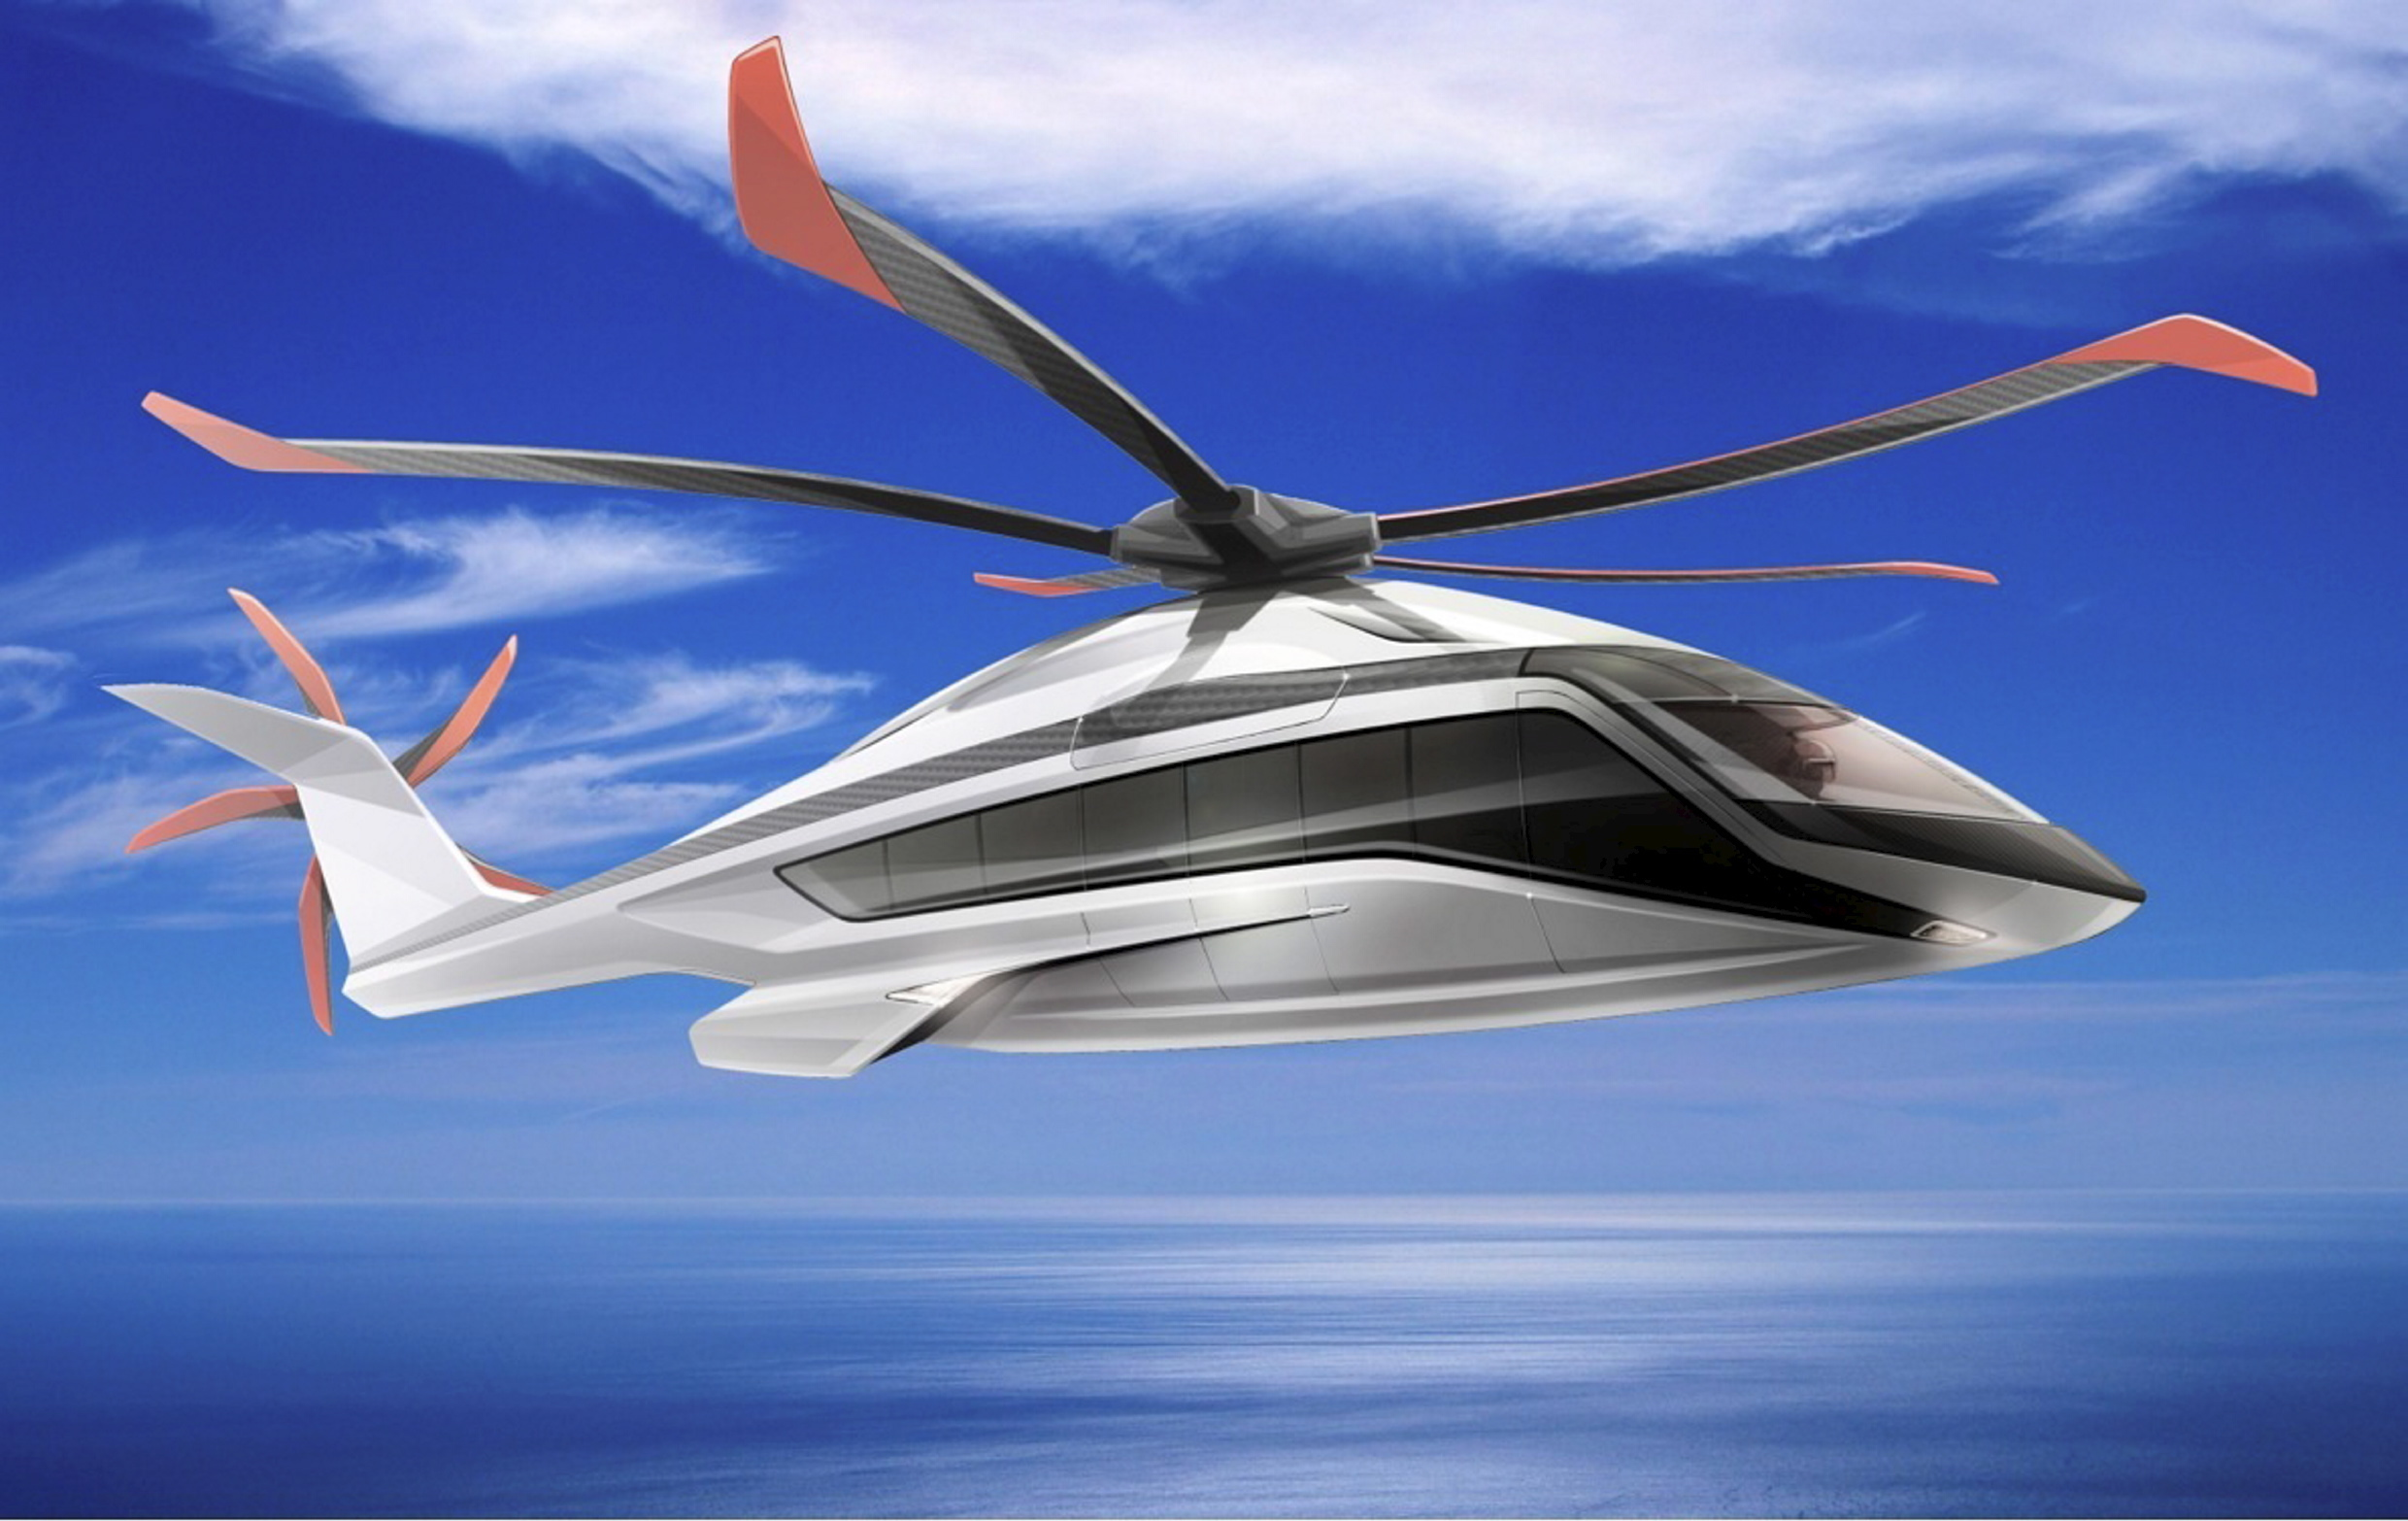 The new Airbus Helicopter X6  concept  has been unveiled as the successor to the Super Puma helicopter family.